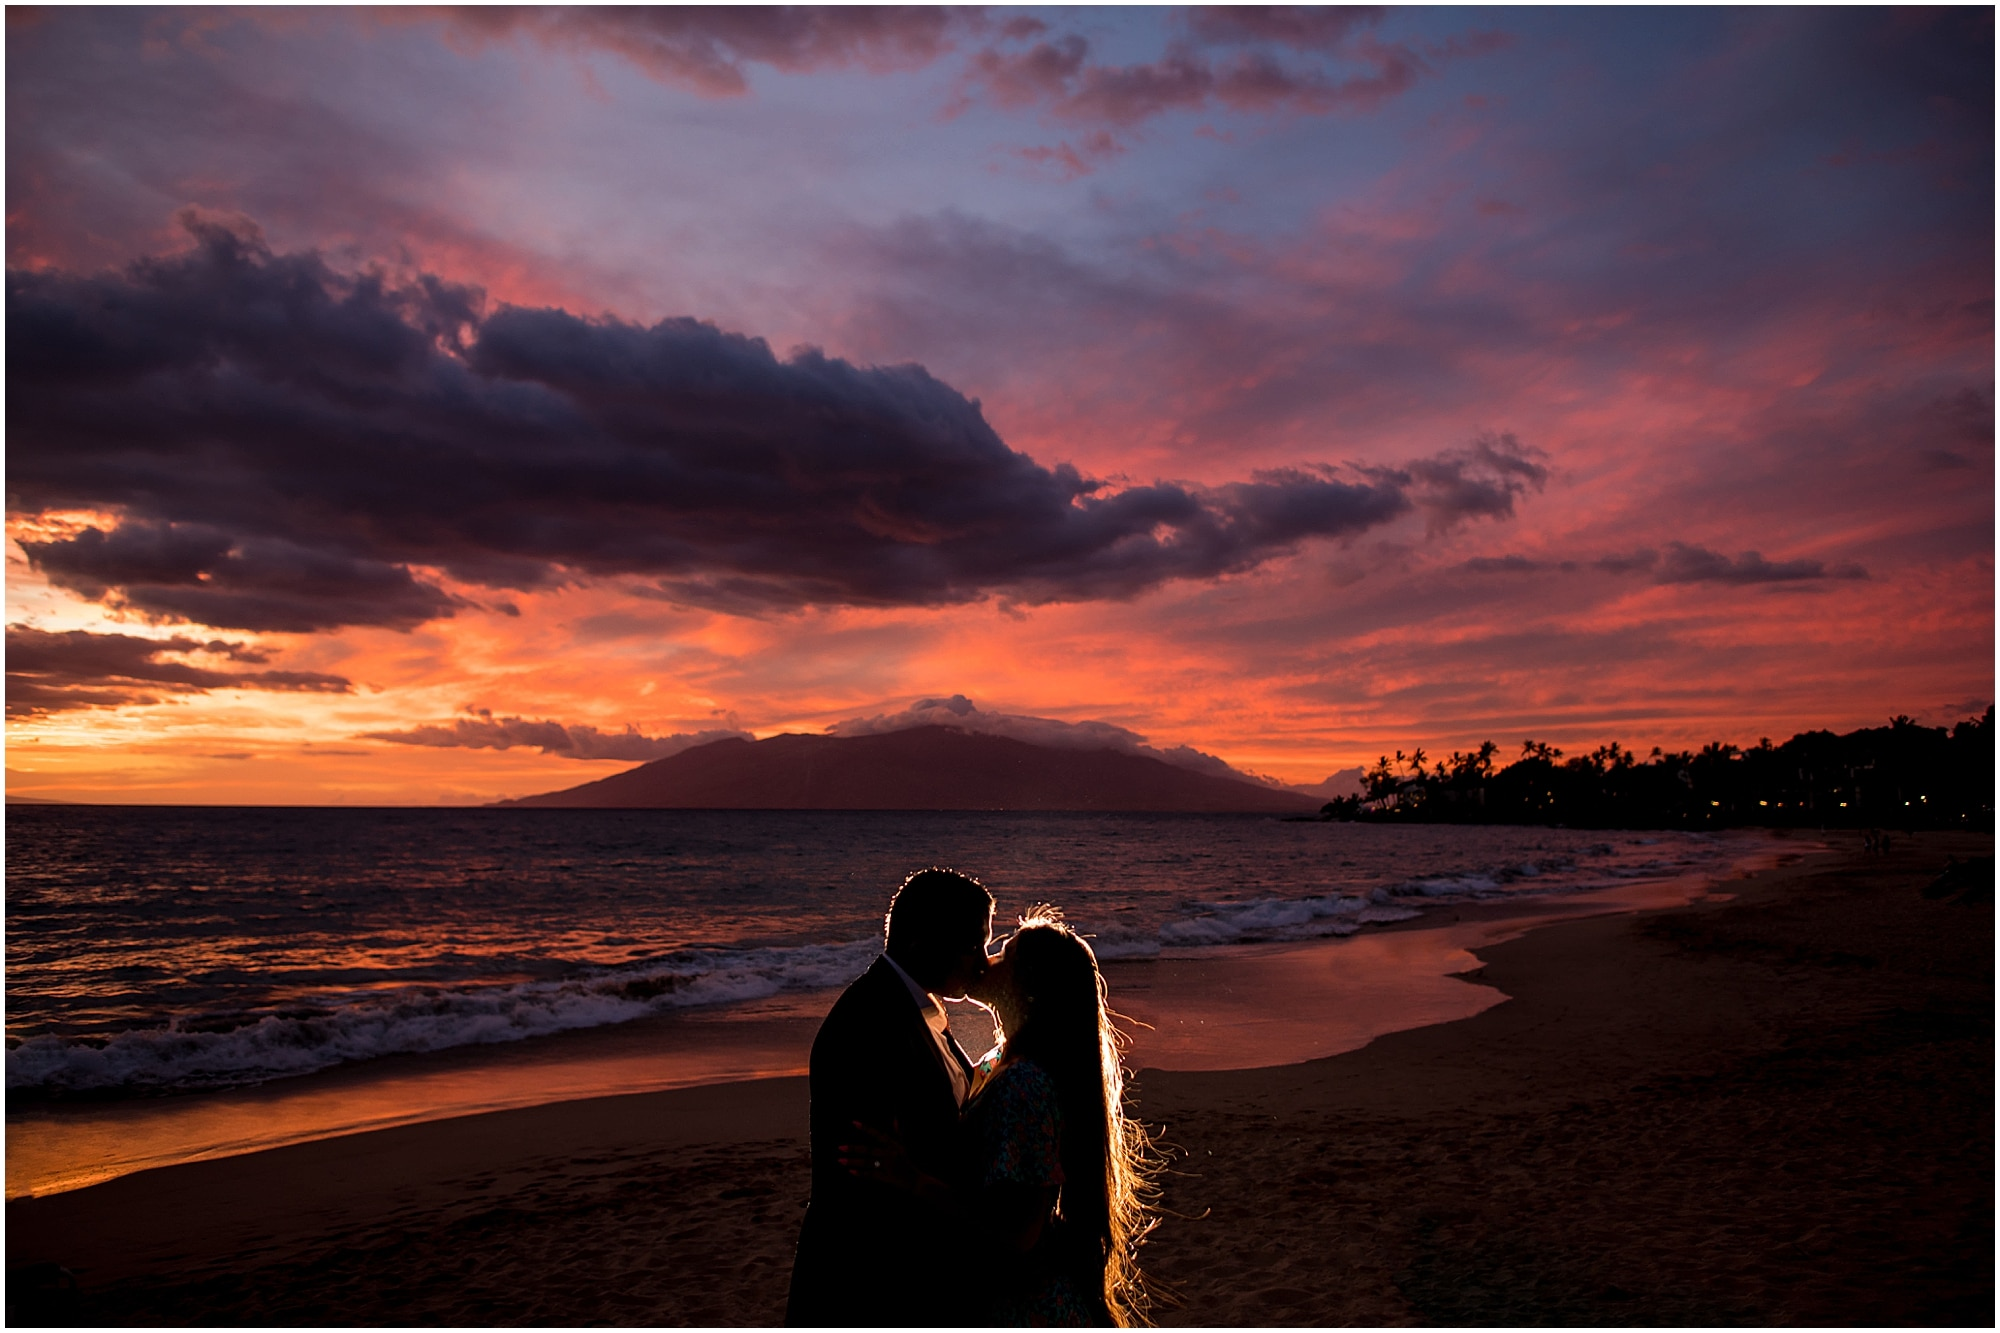 Silhouette of couple kissing on beach at sunset